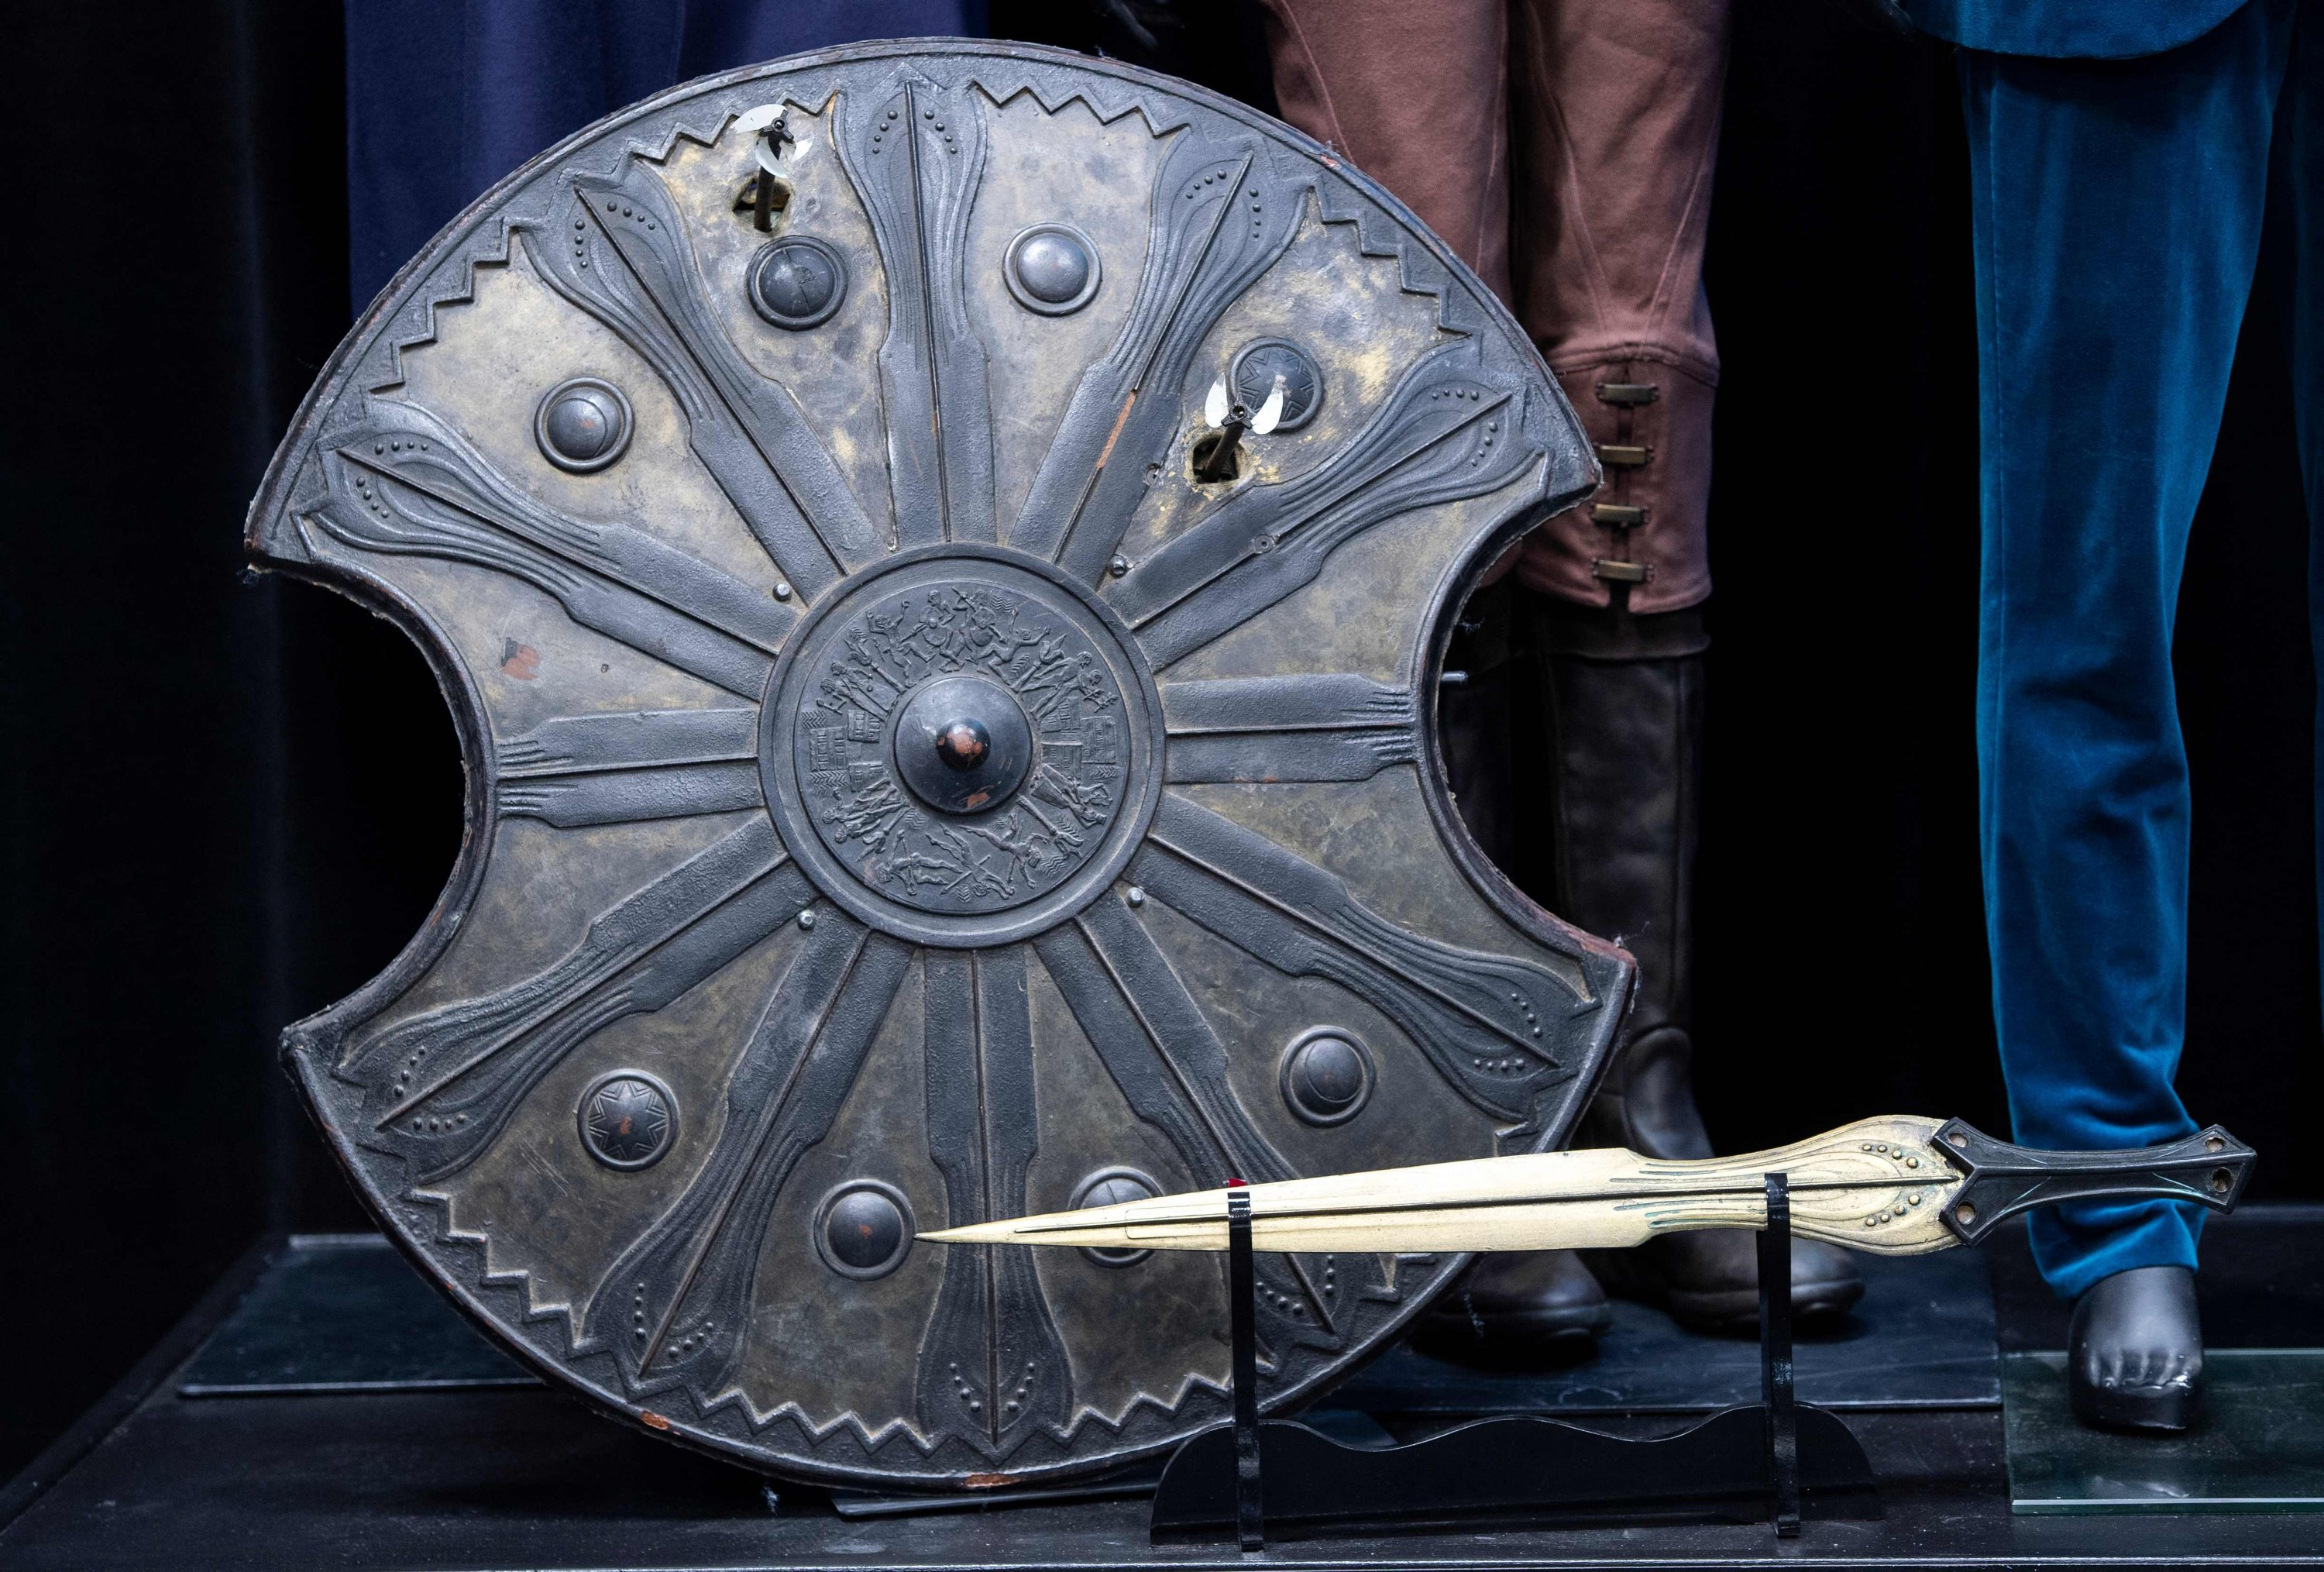 Brad Pitt's shield and sword from the movie 'Troy' are exhibited during a press preview of Prop Store's Iconic Film & TV Memorabilia in Valencia, California, May 14, 2021. (AFP Photo)